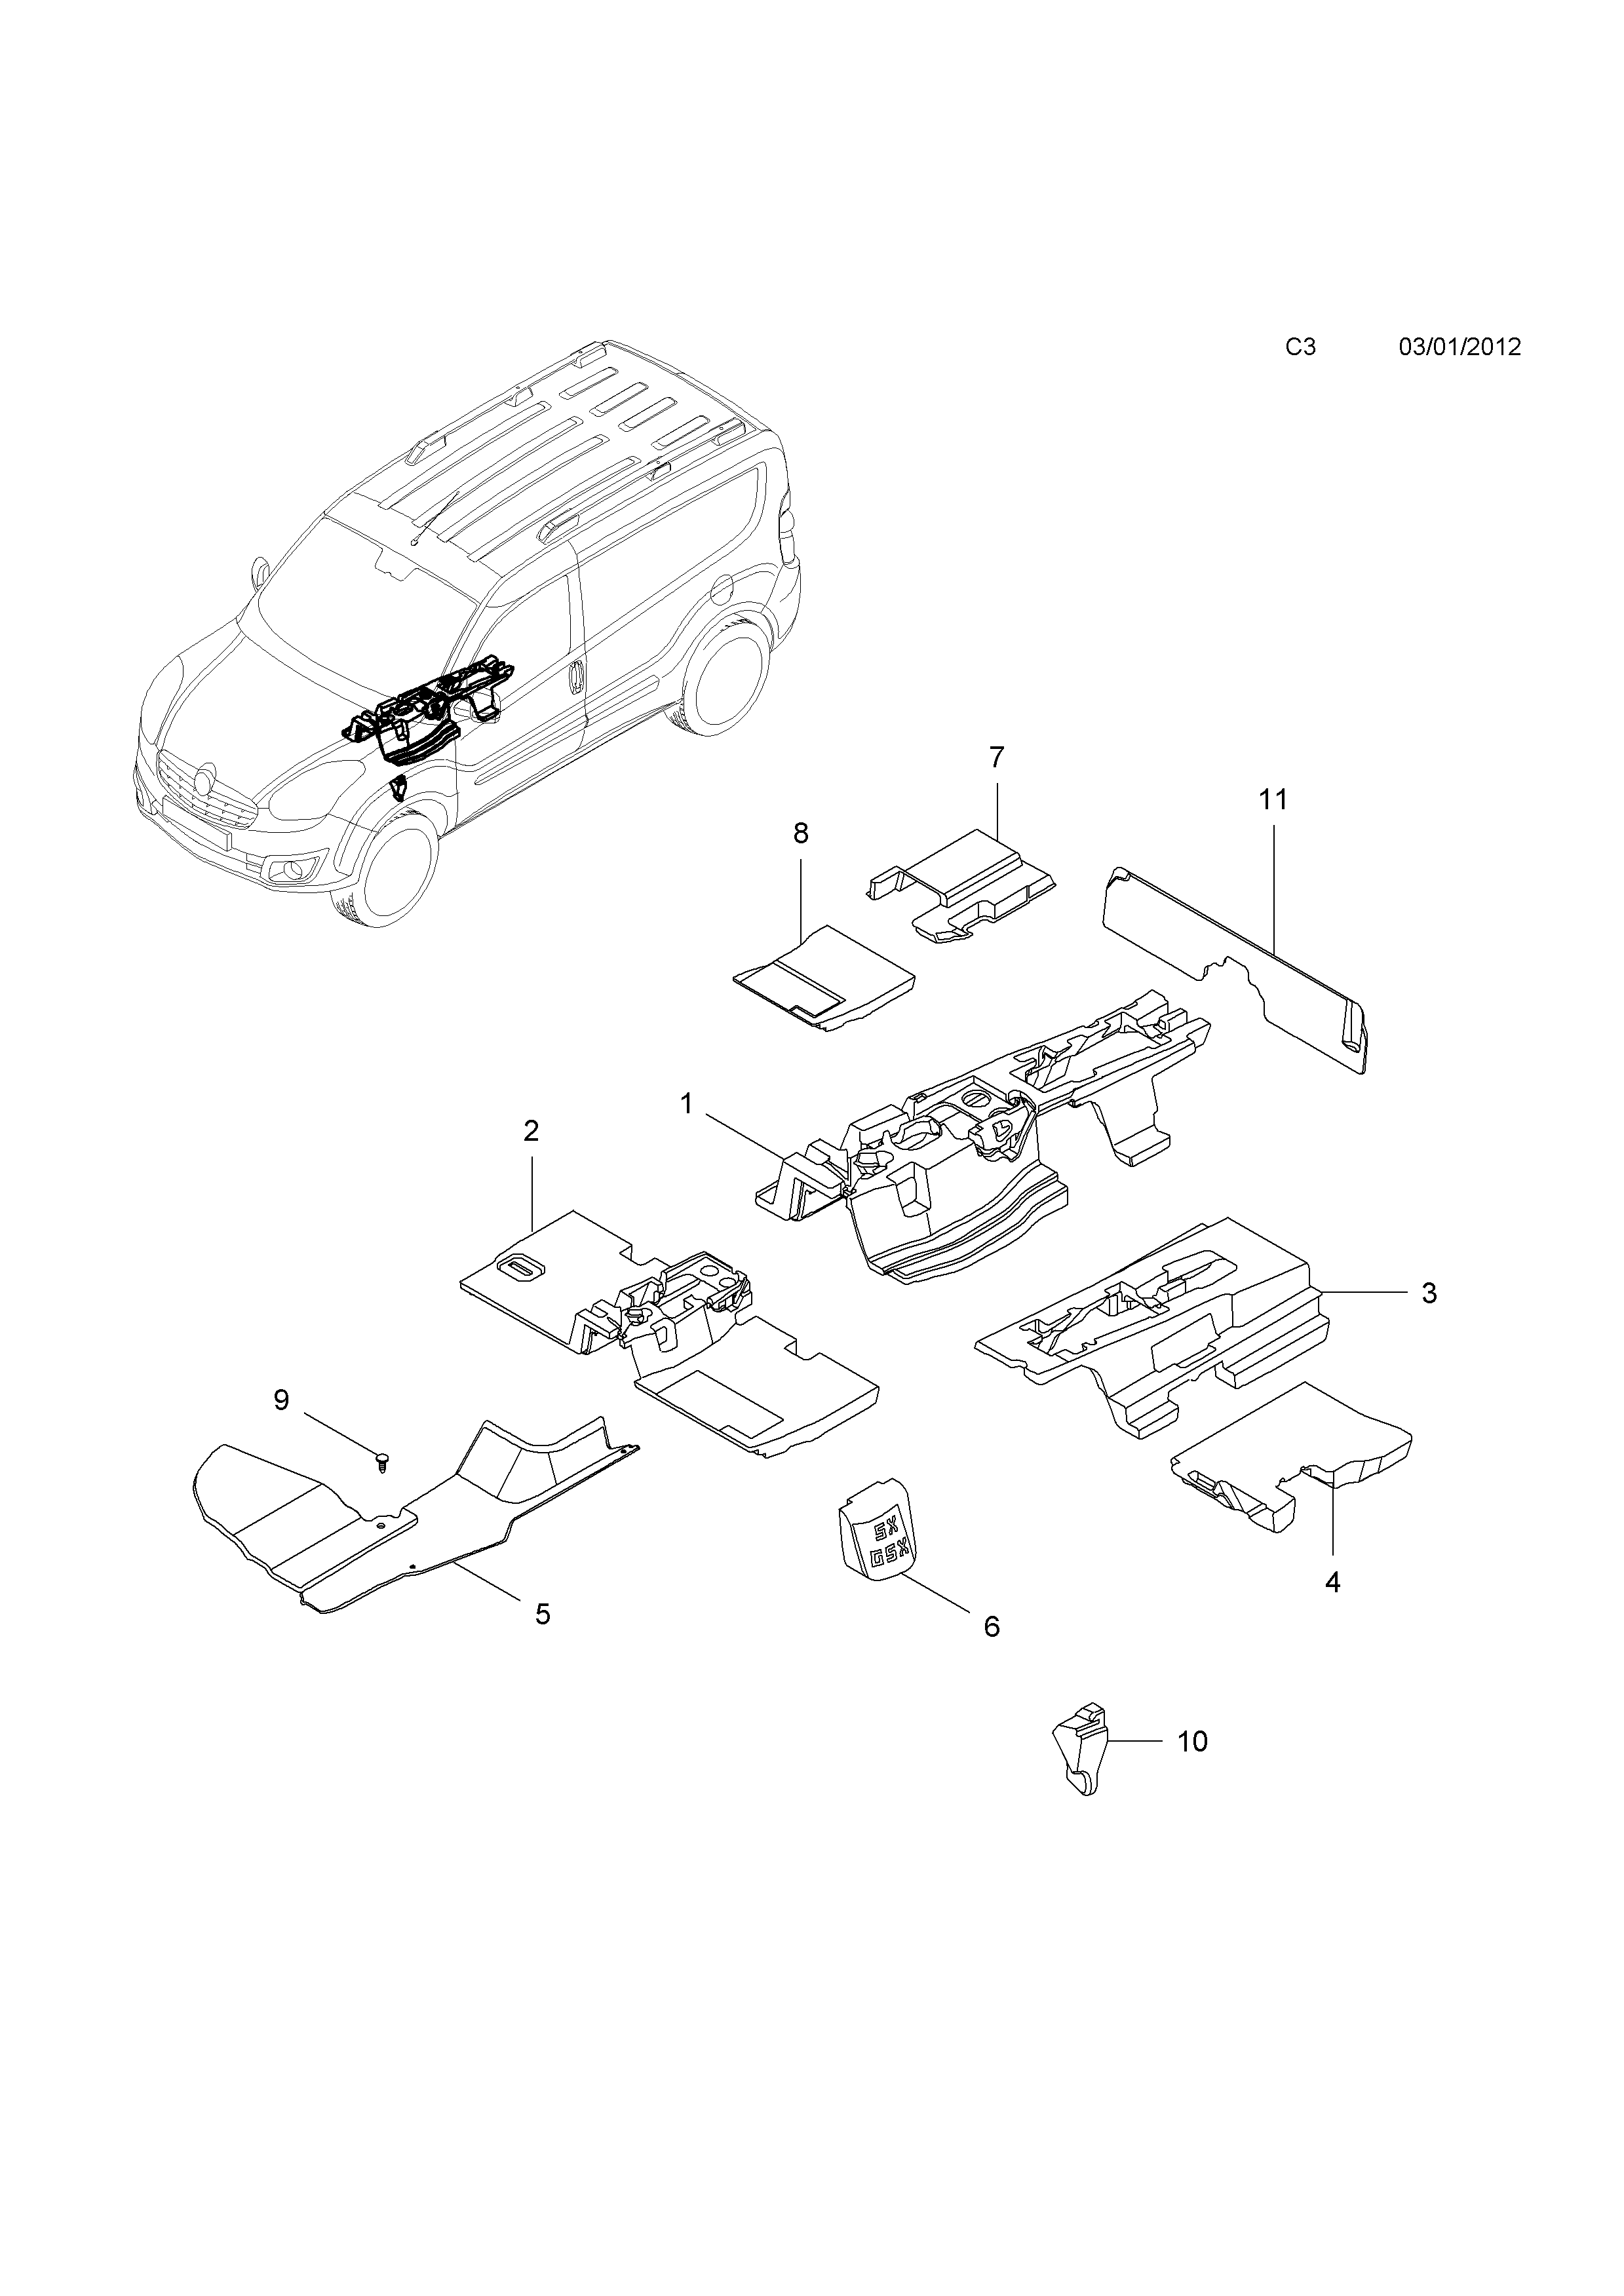 opel bo d 2012 c body interior fittings 1 insulators 4 Light Switch Home Wiring Diagram list of parts